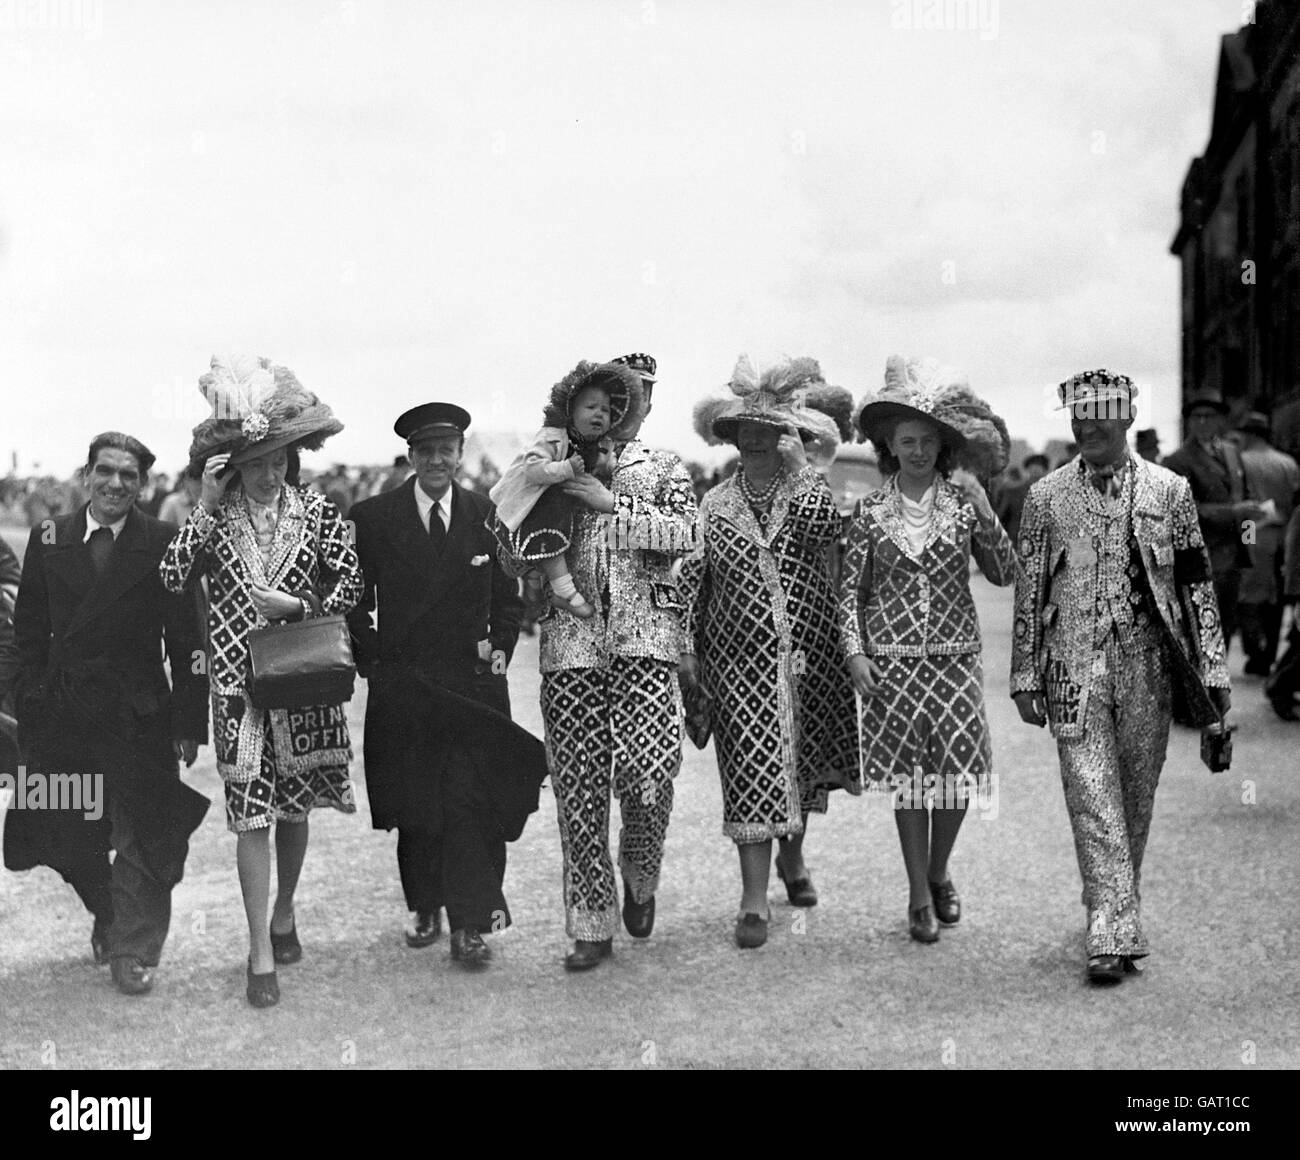 Derby Day Scenes at Epsom Downs 1948 - Stock Image